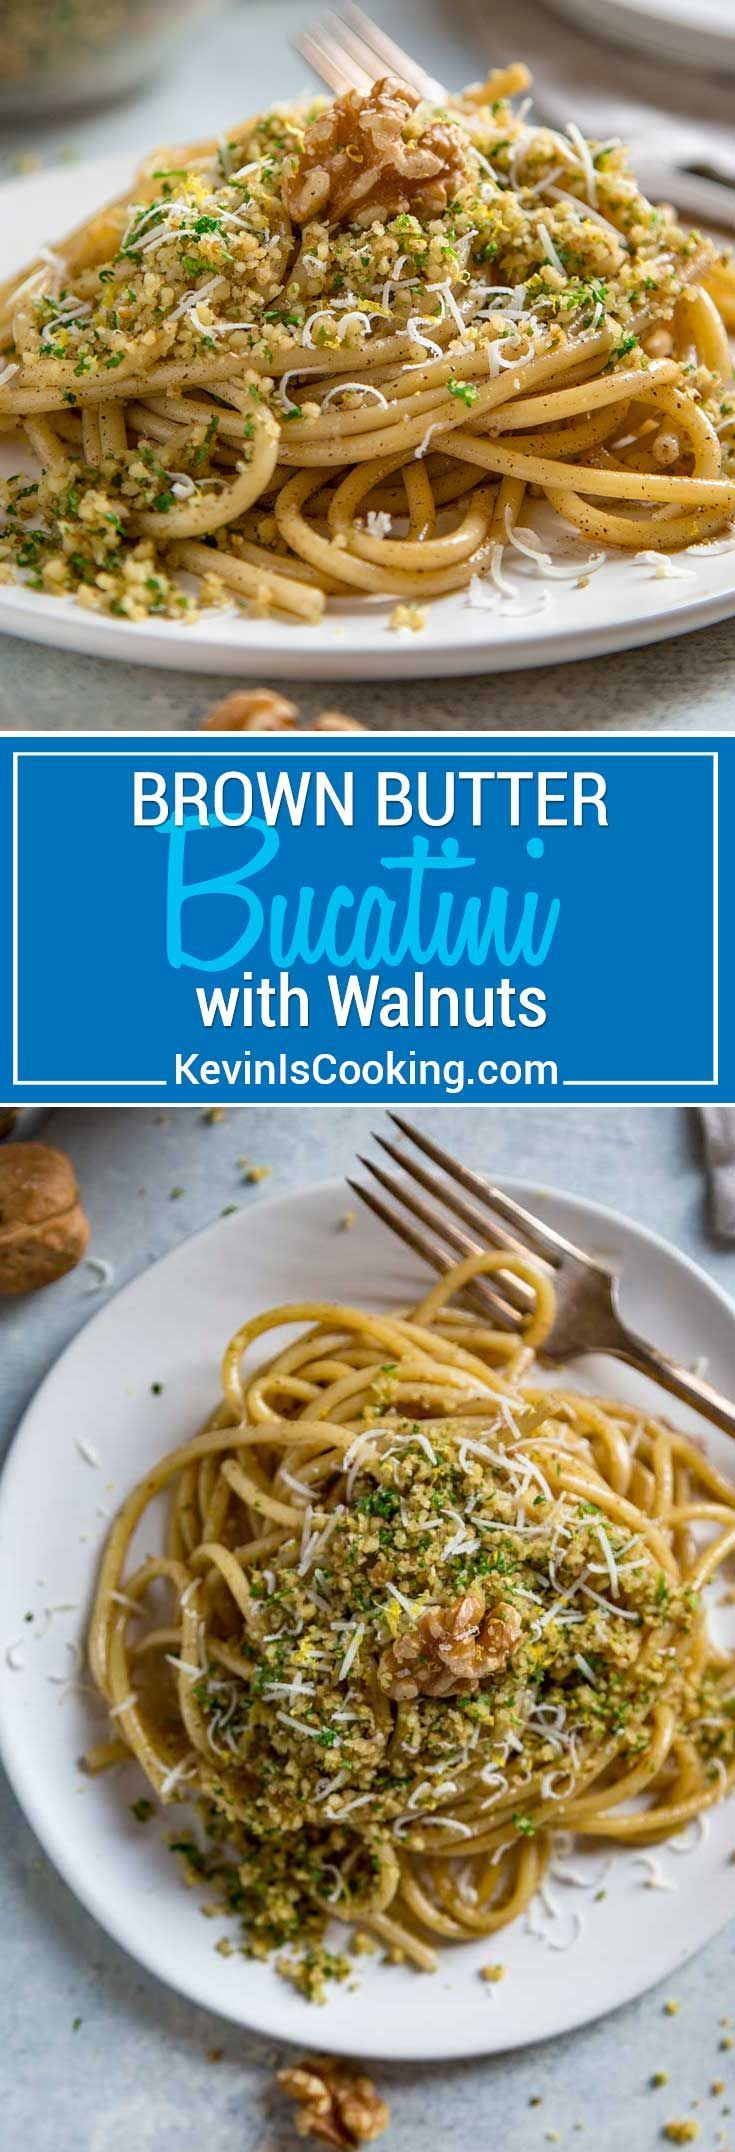 An easy to make dish in minutes, this Brown Butter Bucatini with Walnuts has the nutty flavor of browned butter coating the pasta and is topped with a ground walnut, parsley and lemon zest crumble. #pasta #dinner